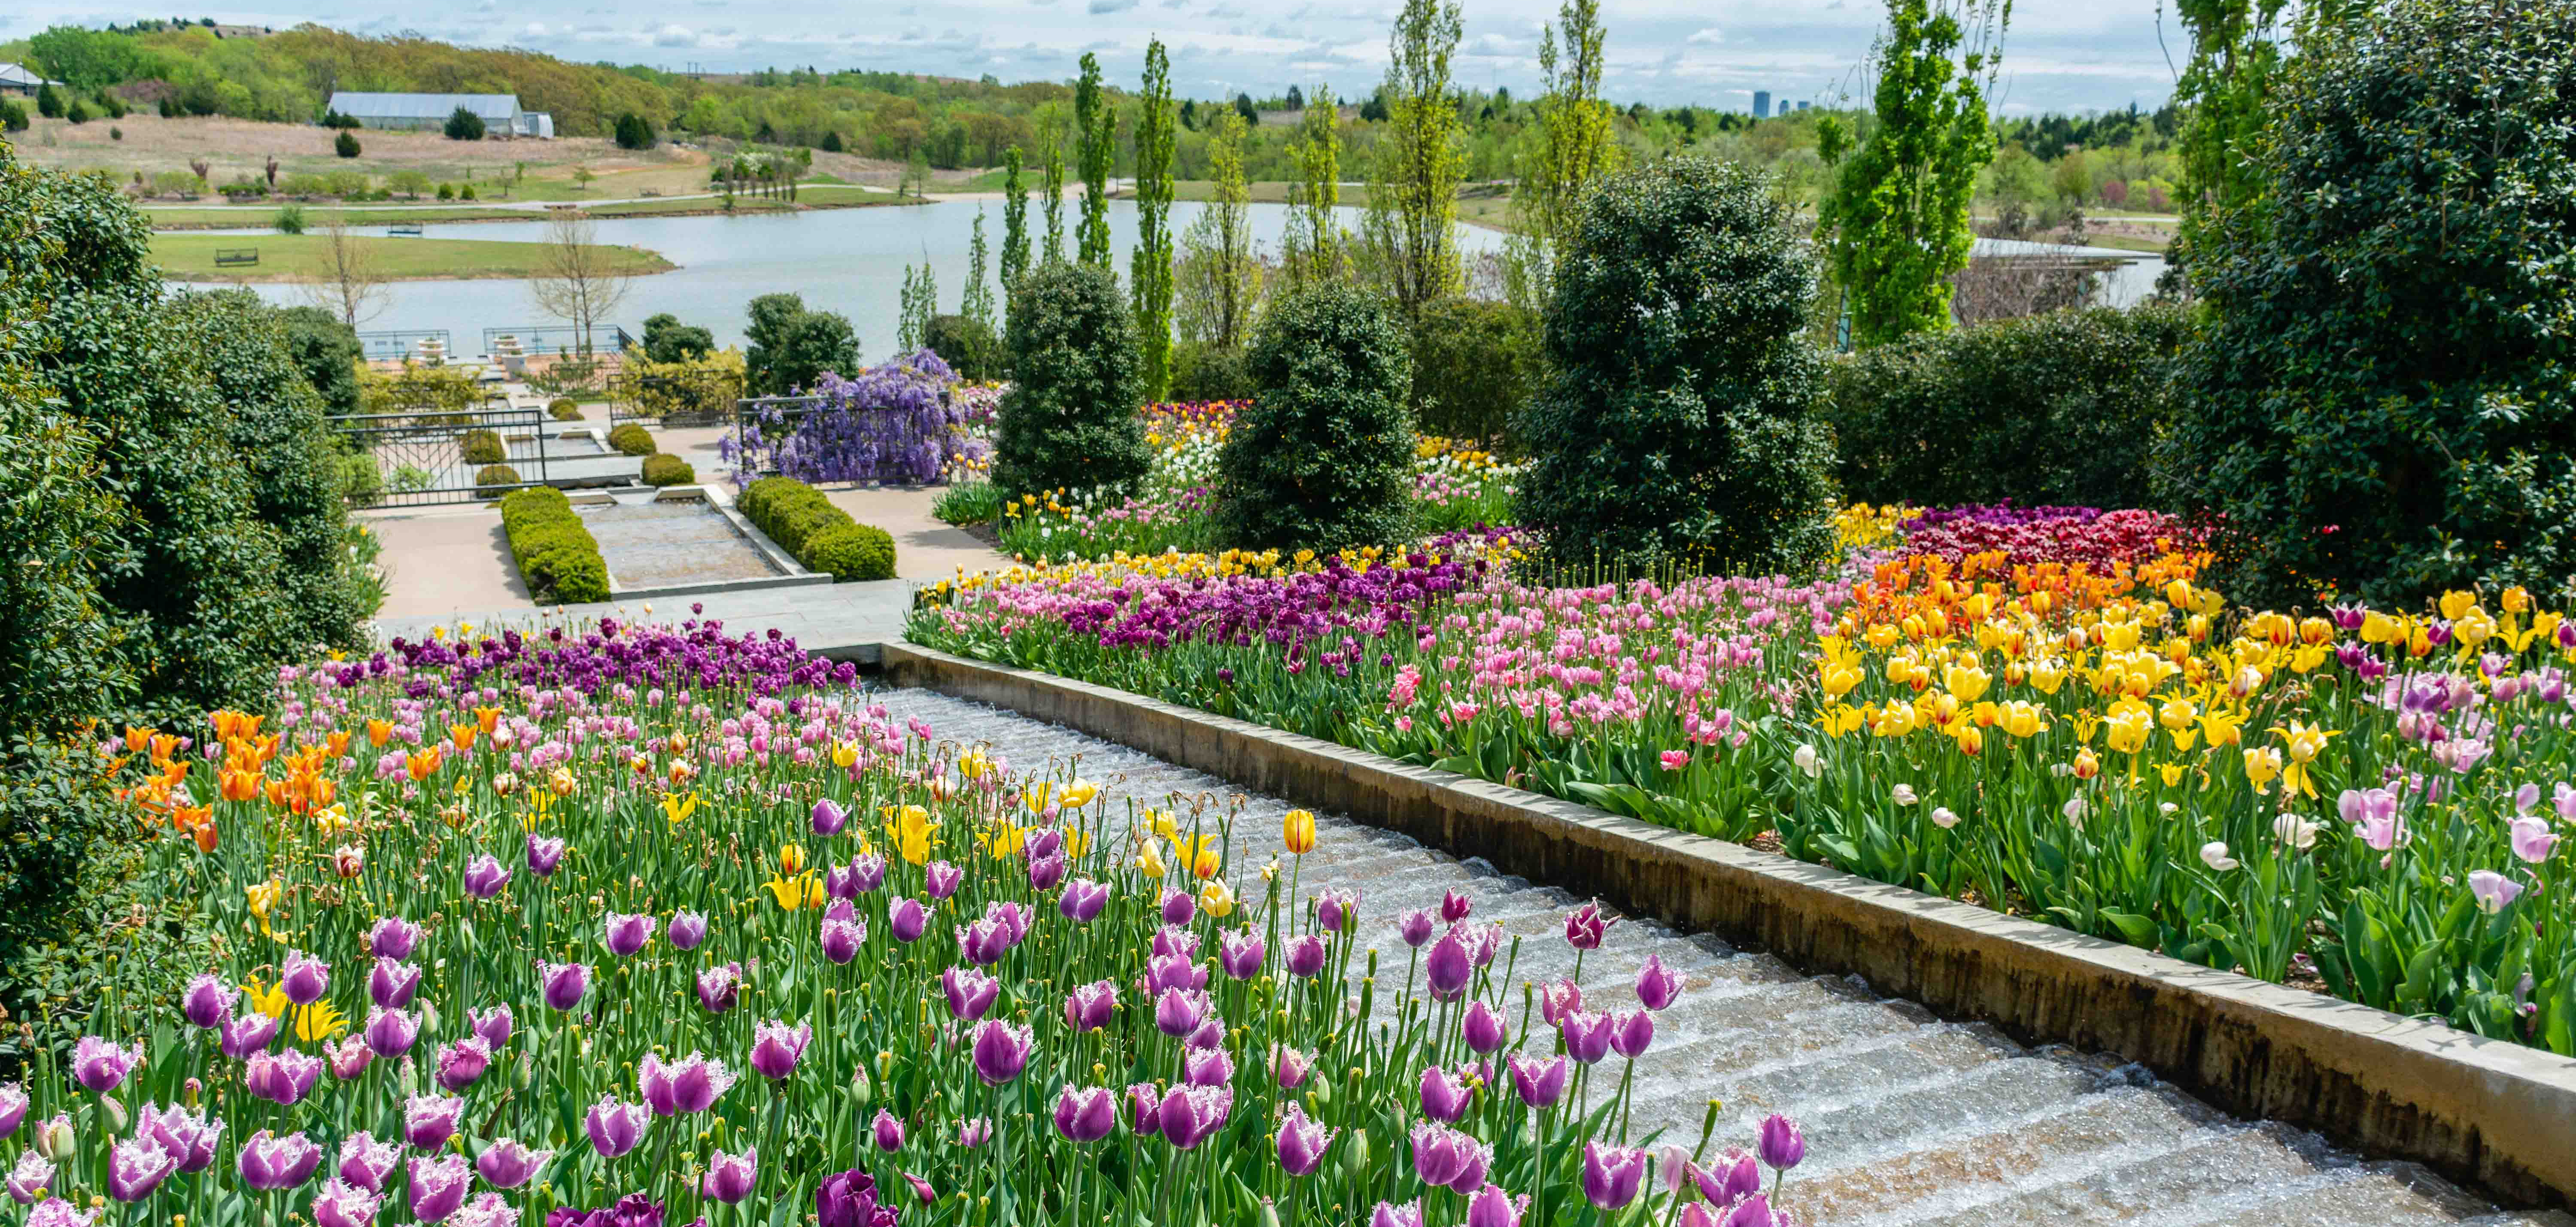 Tulips bloom at the A.R. & Marylouise Tandy Floral Terraces at the Tulsa Botanic Gardens.